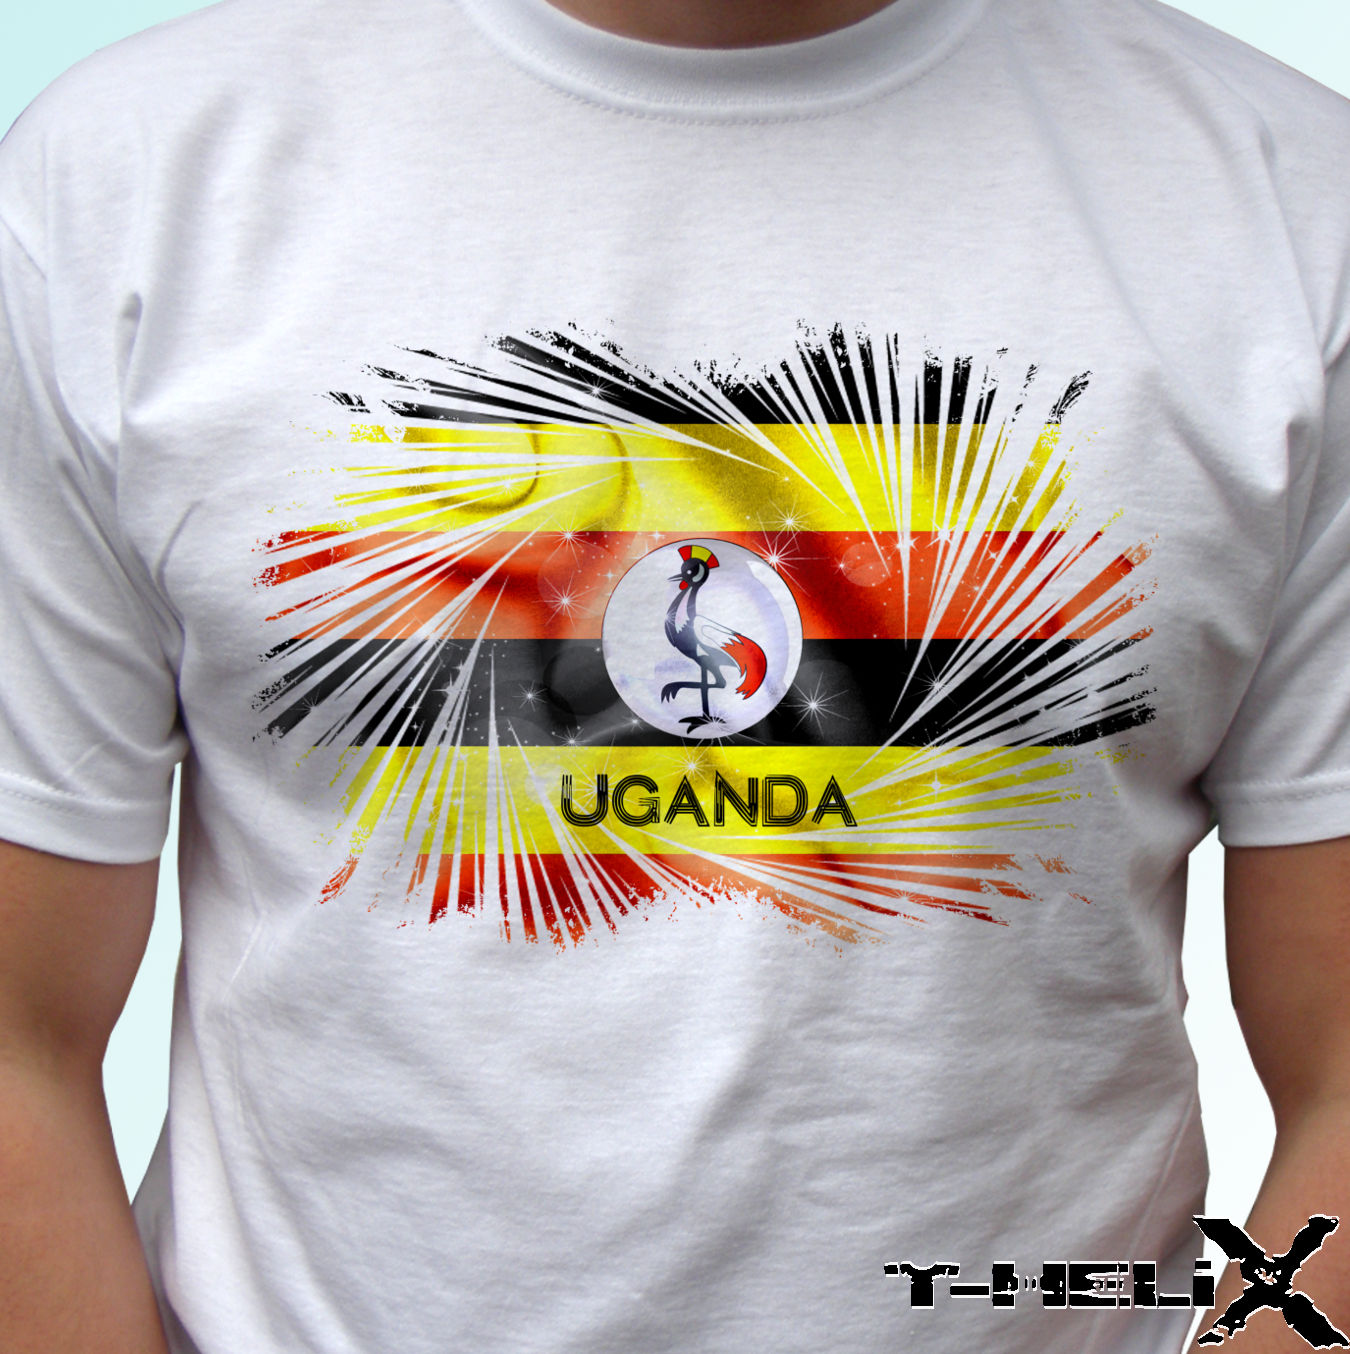 Uganda flag white t shirt top Africa country design mens womens kids amp baby Funny Tops Tee New Unisex Funny free shipping in T Shirts from Men 39 s Clothing